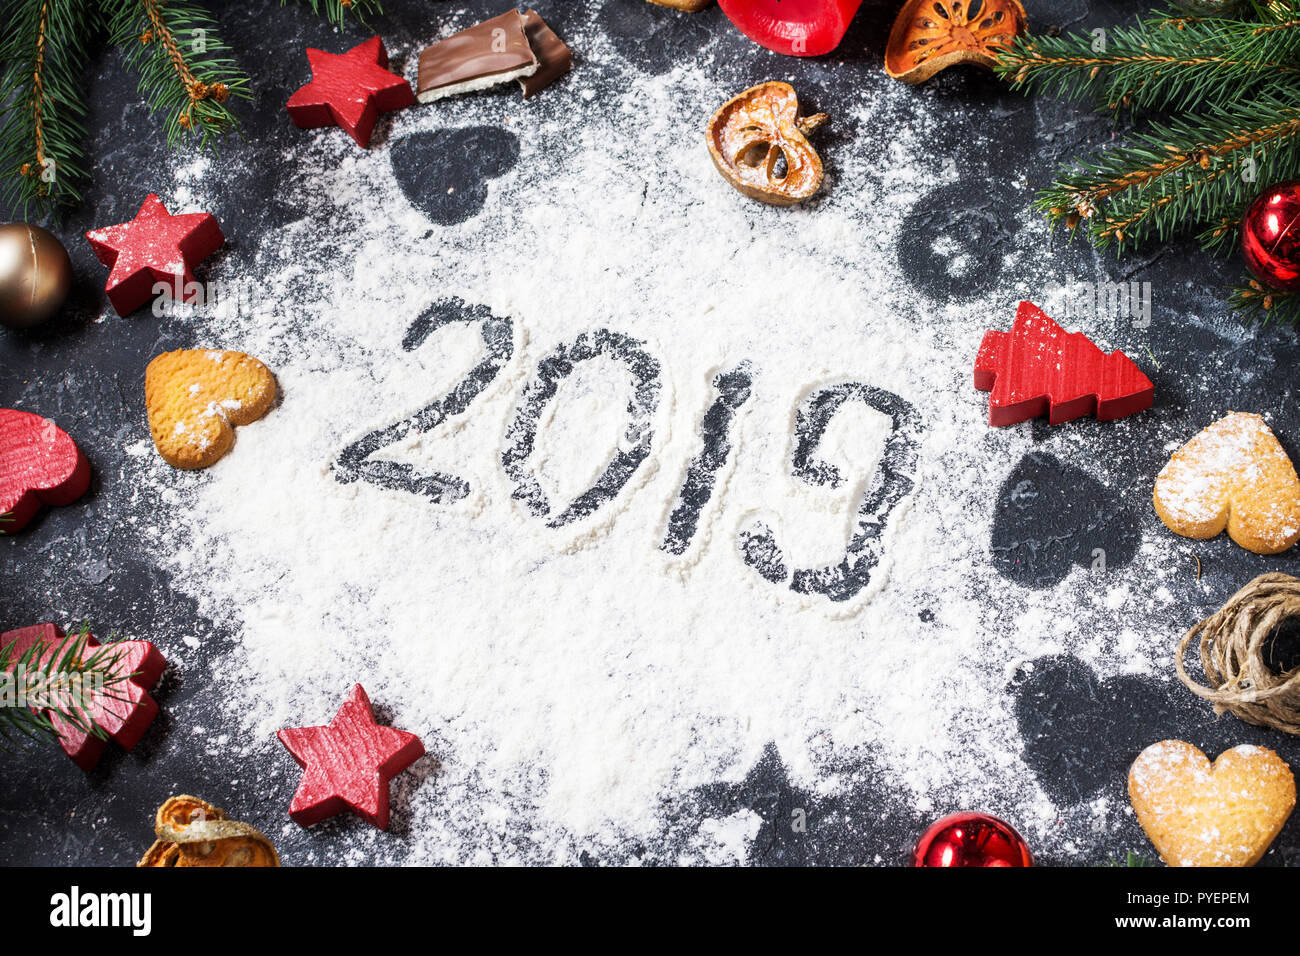 Happy New Year 2019 written on flour and Christmas Decorations Gingerbread cookies on dark stone background. New Year greeting card - Stock Image